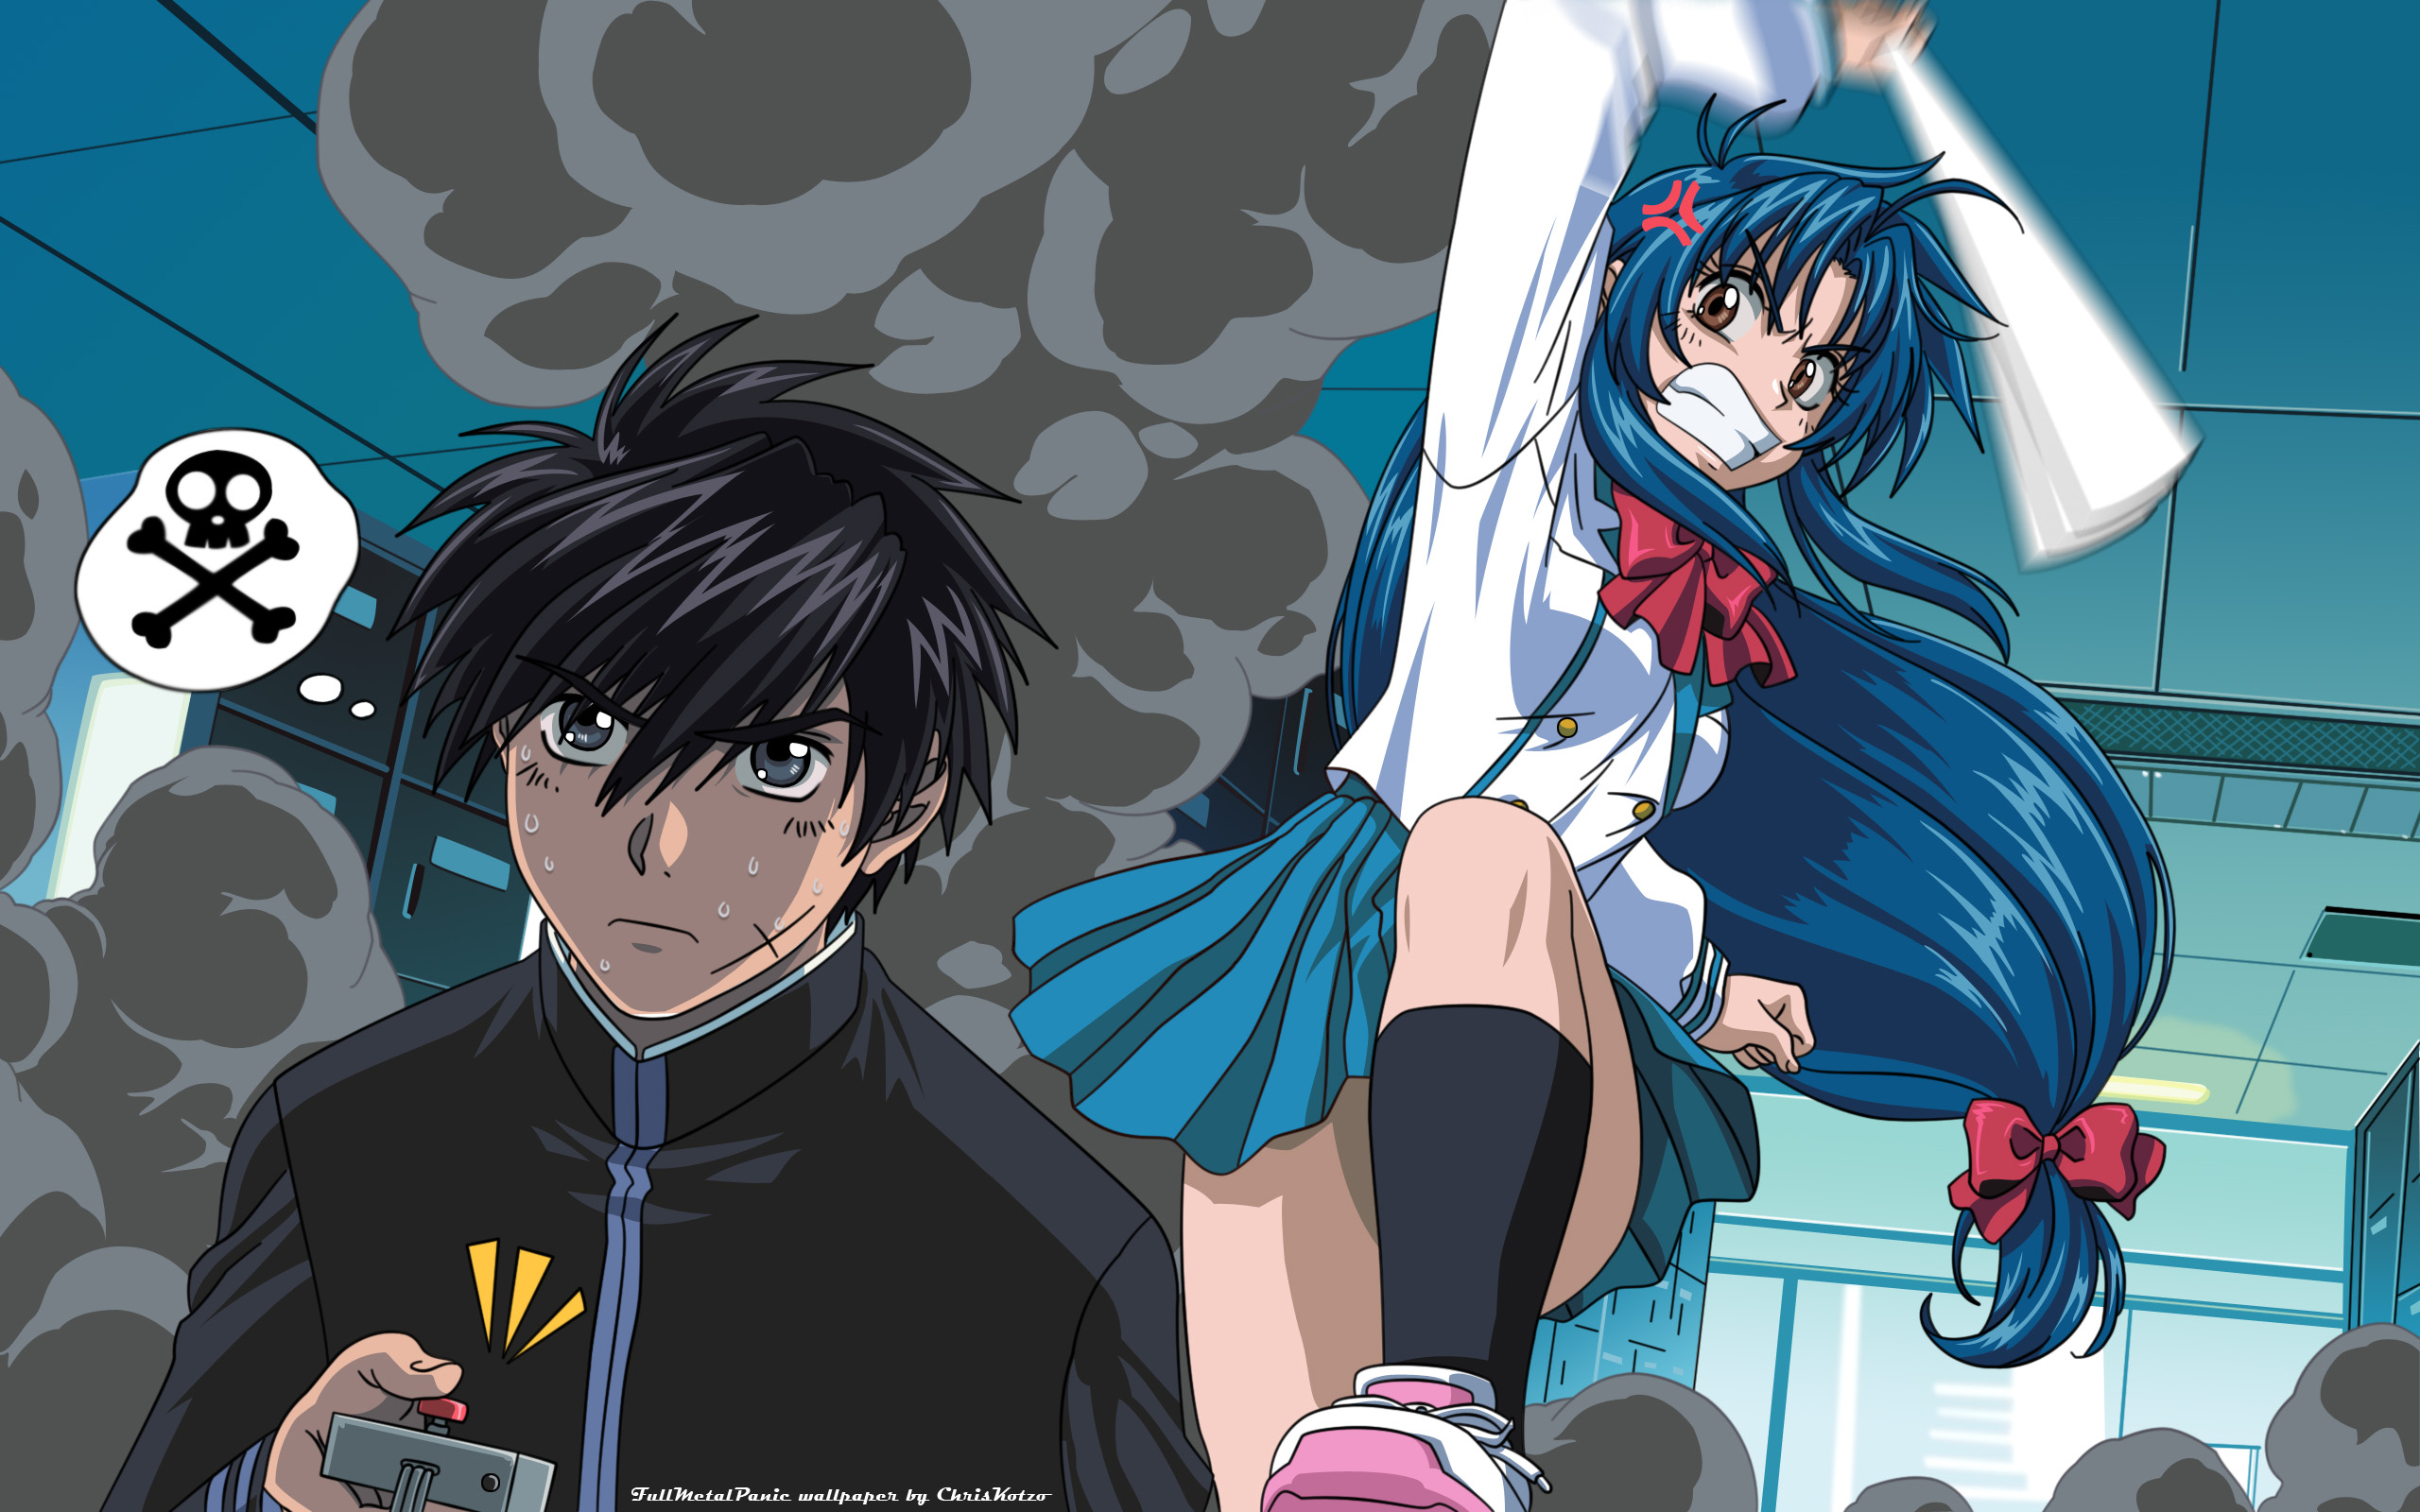 Anime - Full Metal Panic! Wallpaper